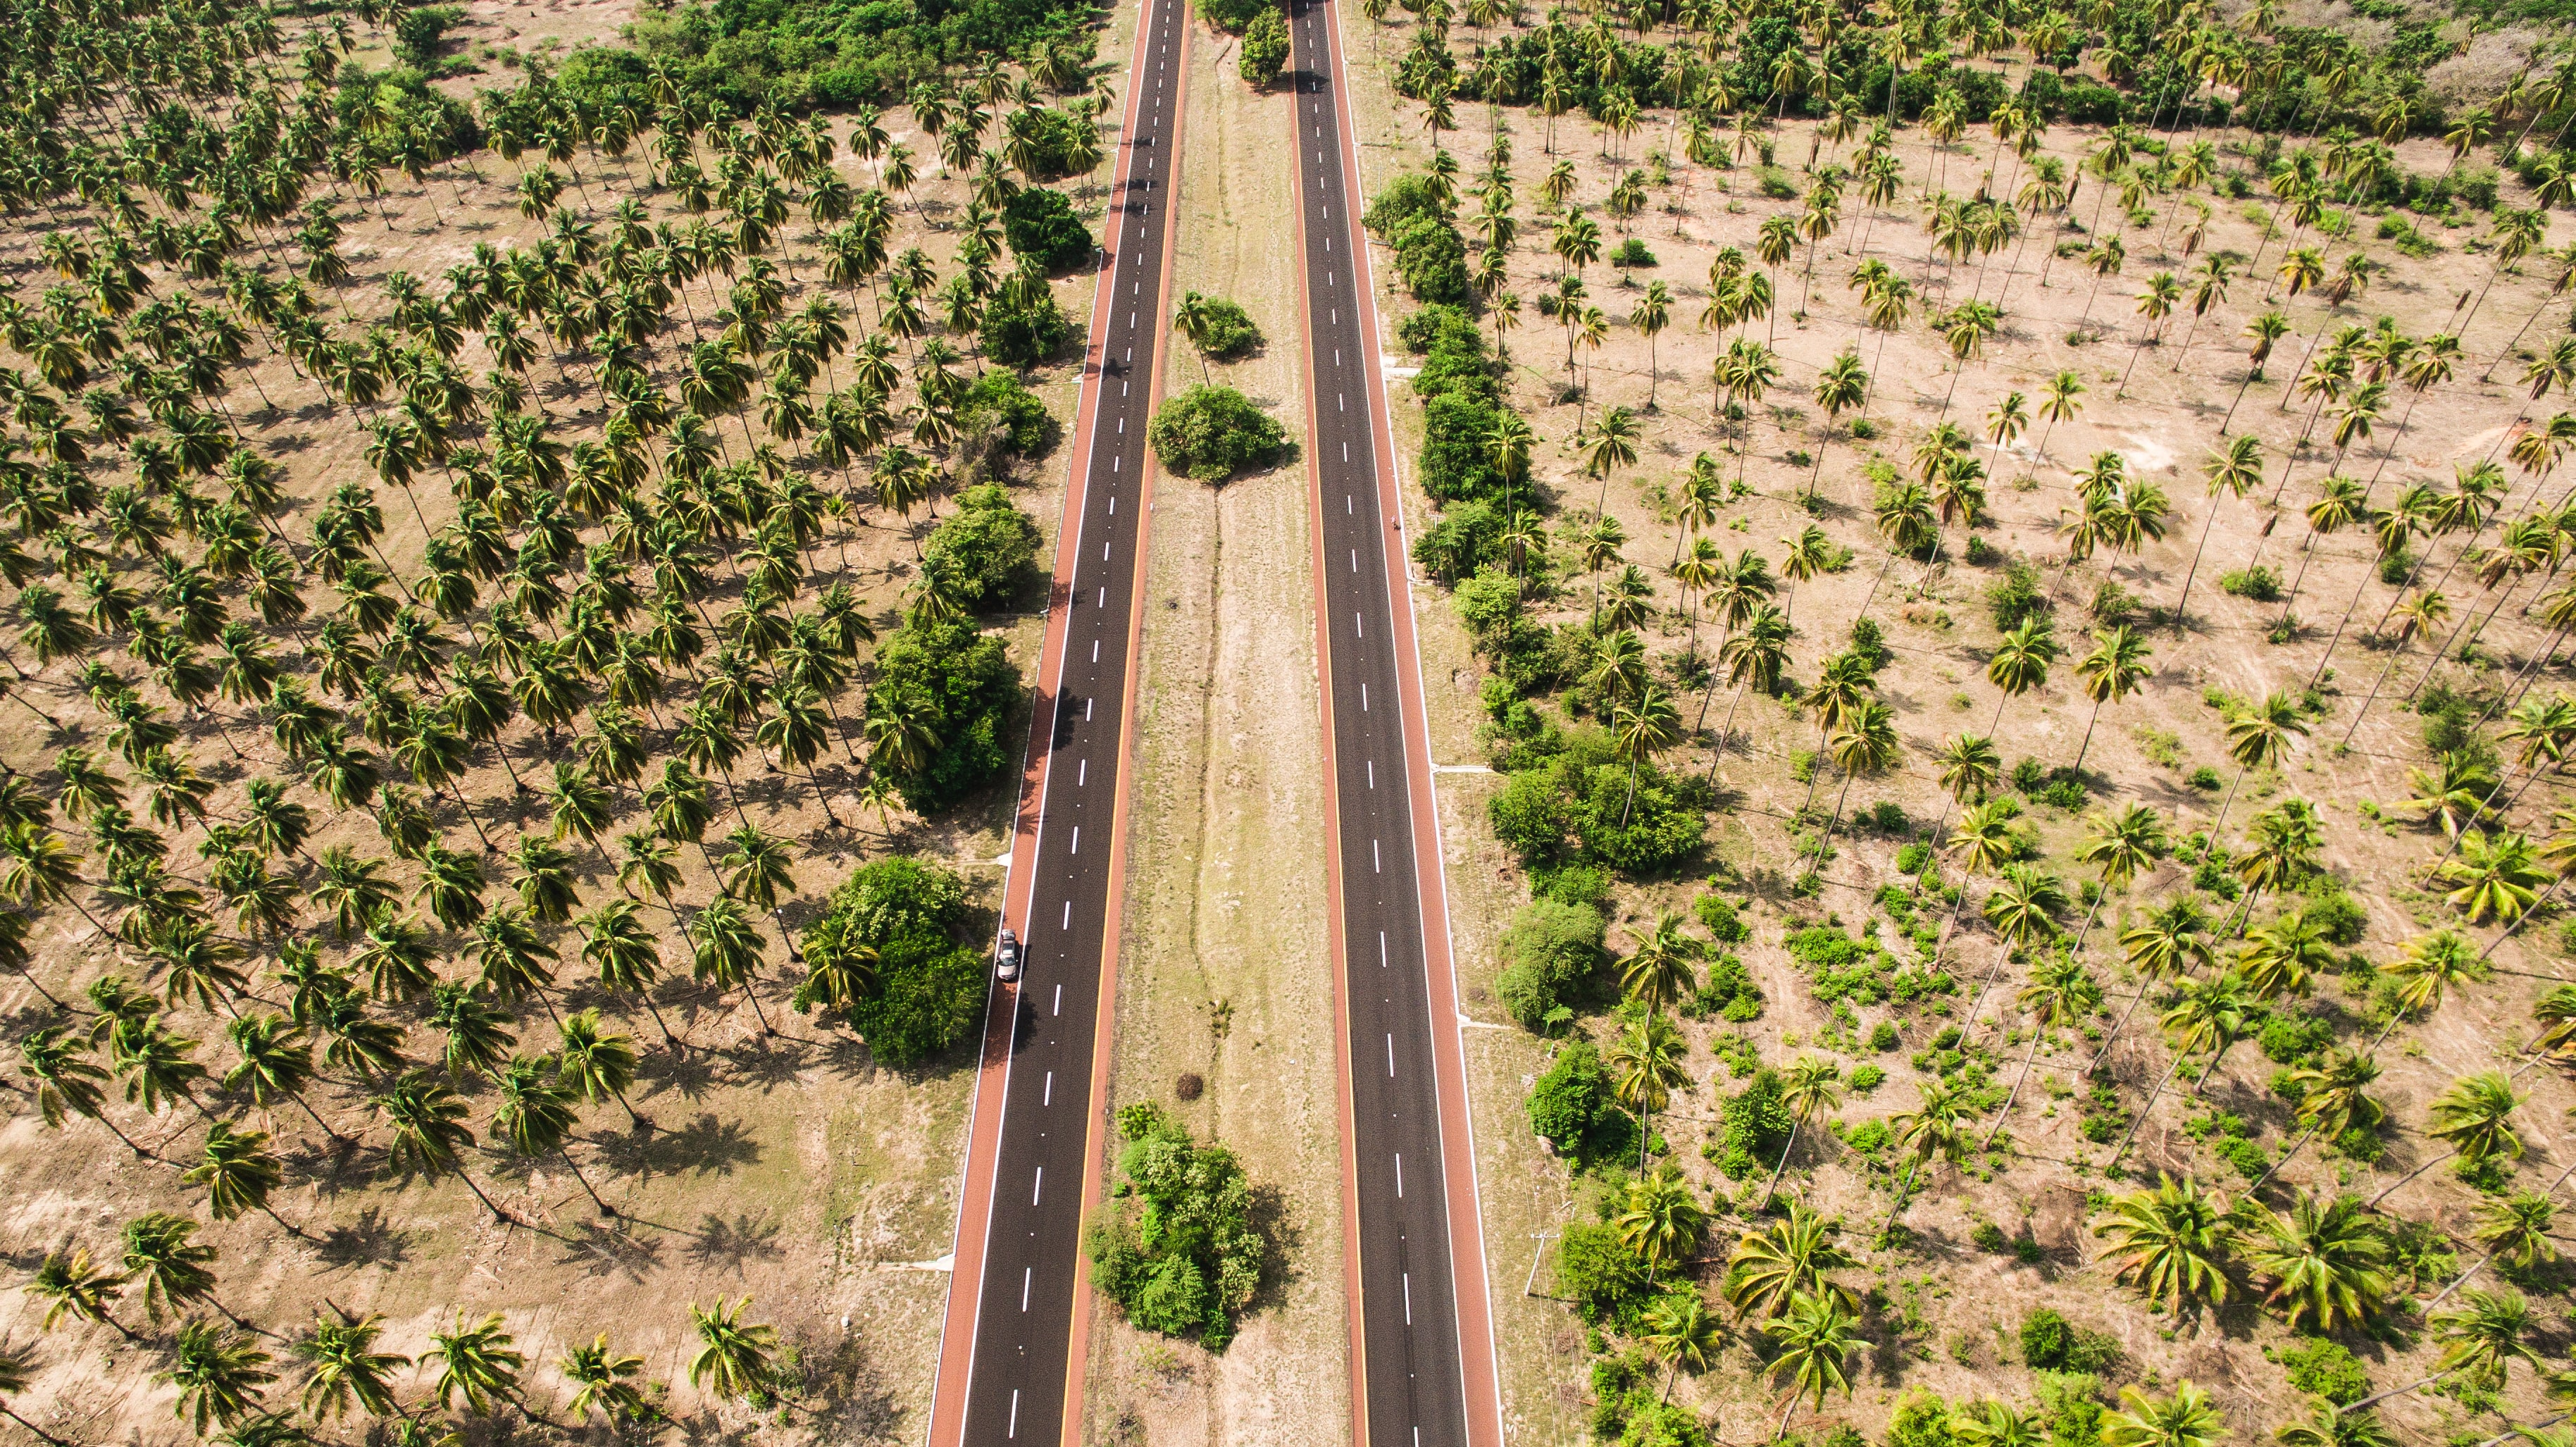 An aerial photo of two parallel lanes surrounded with palm trees